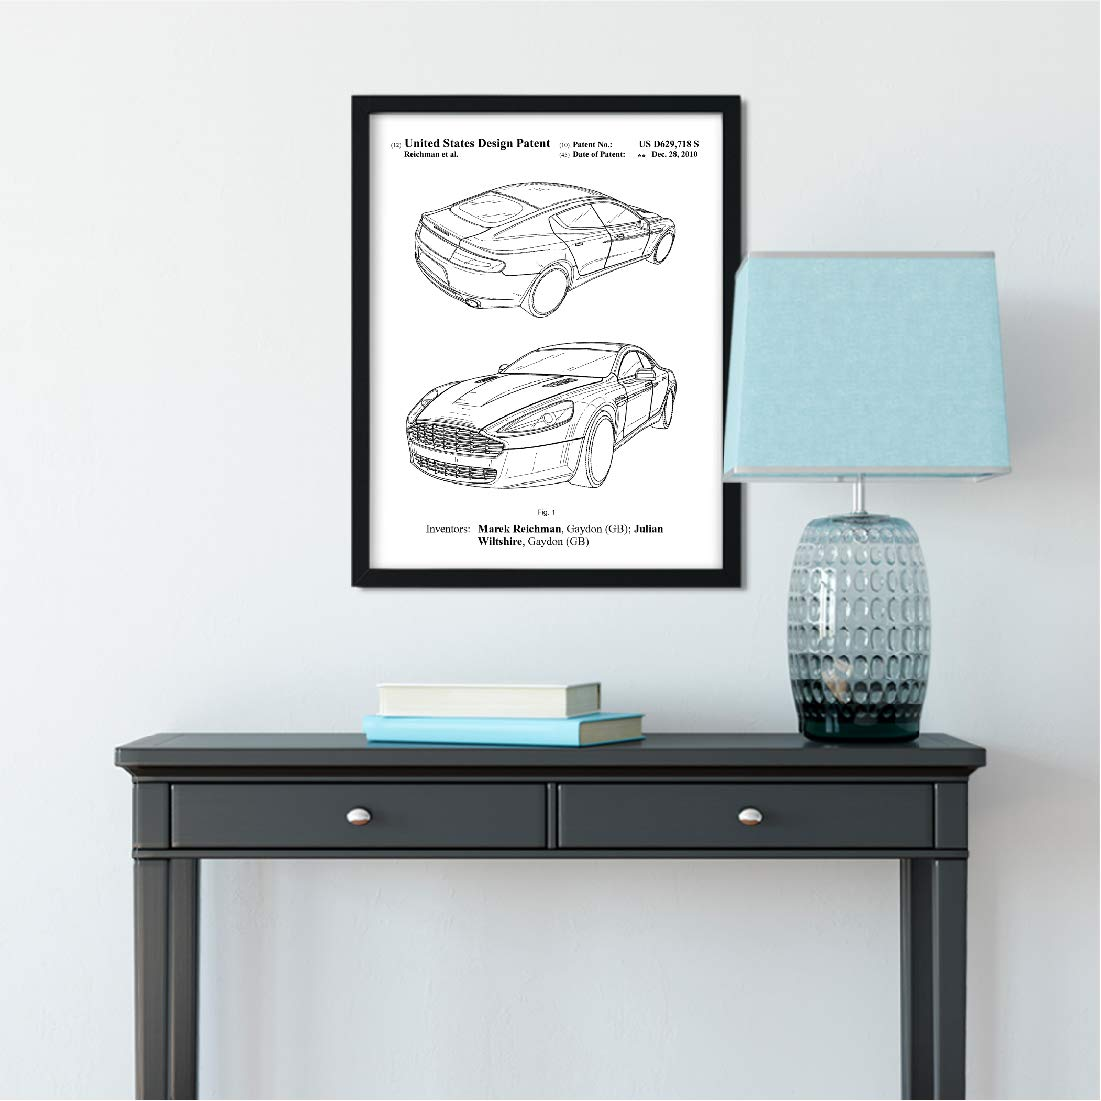 Andaz Press Unframed Modern Black Patent Print Wall Art Decor Poster, 8.5x11-inch, Planes, Trains,...